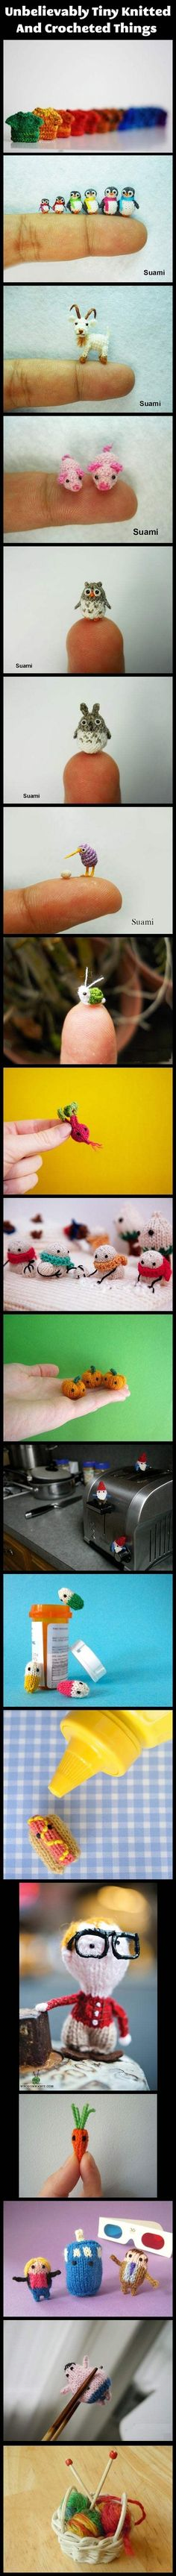 Unbelievably tiny knitted and crocheted things.